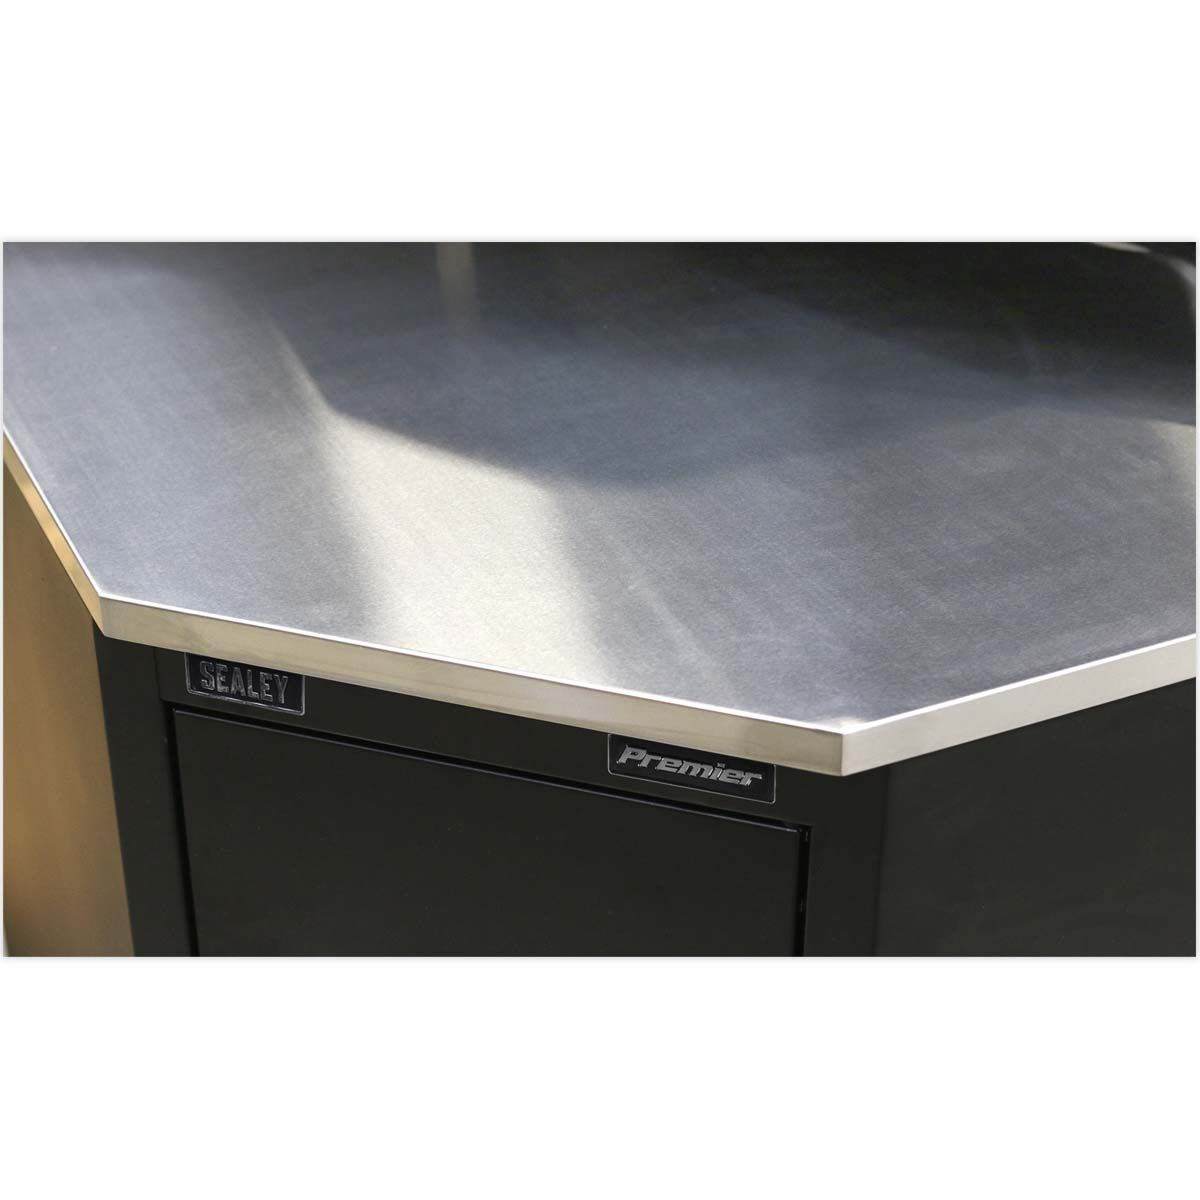 Sealey Premier Stainless Steel Corner Worktop 930mm